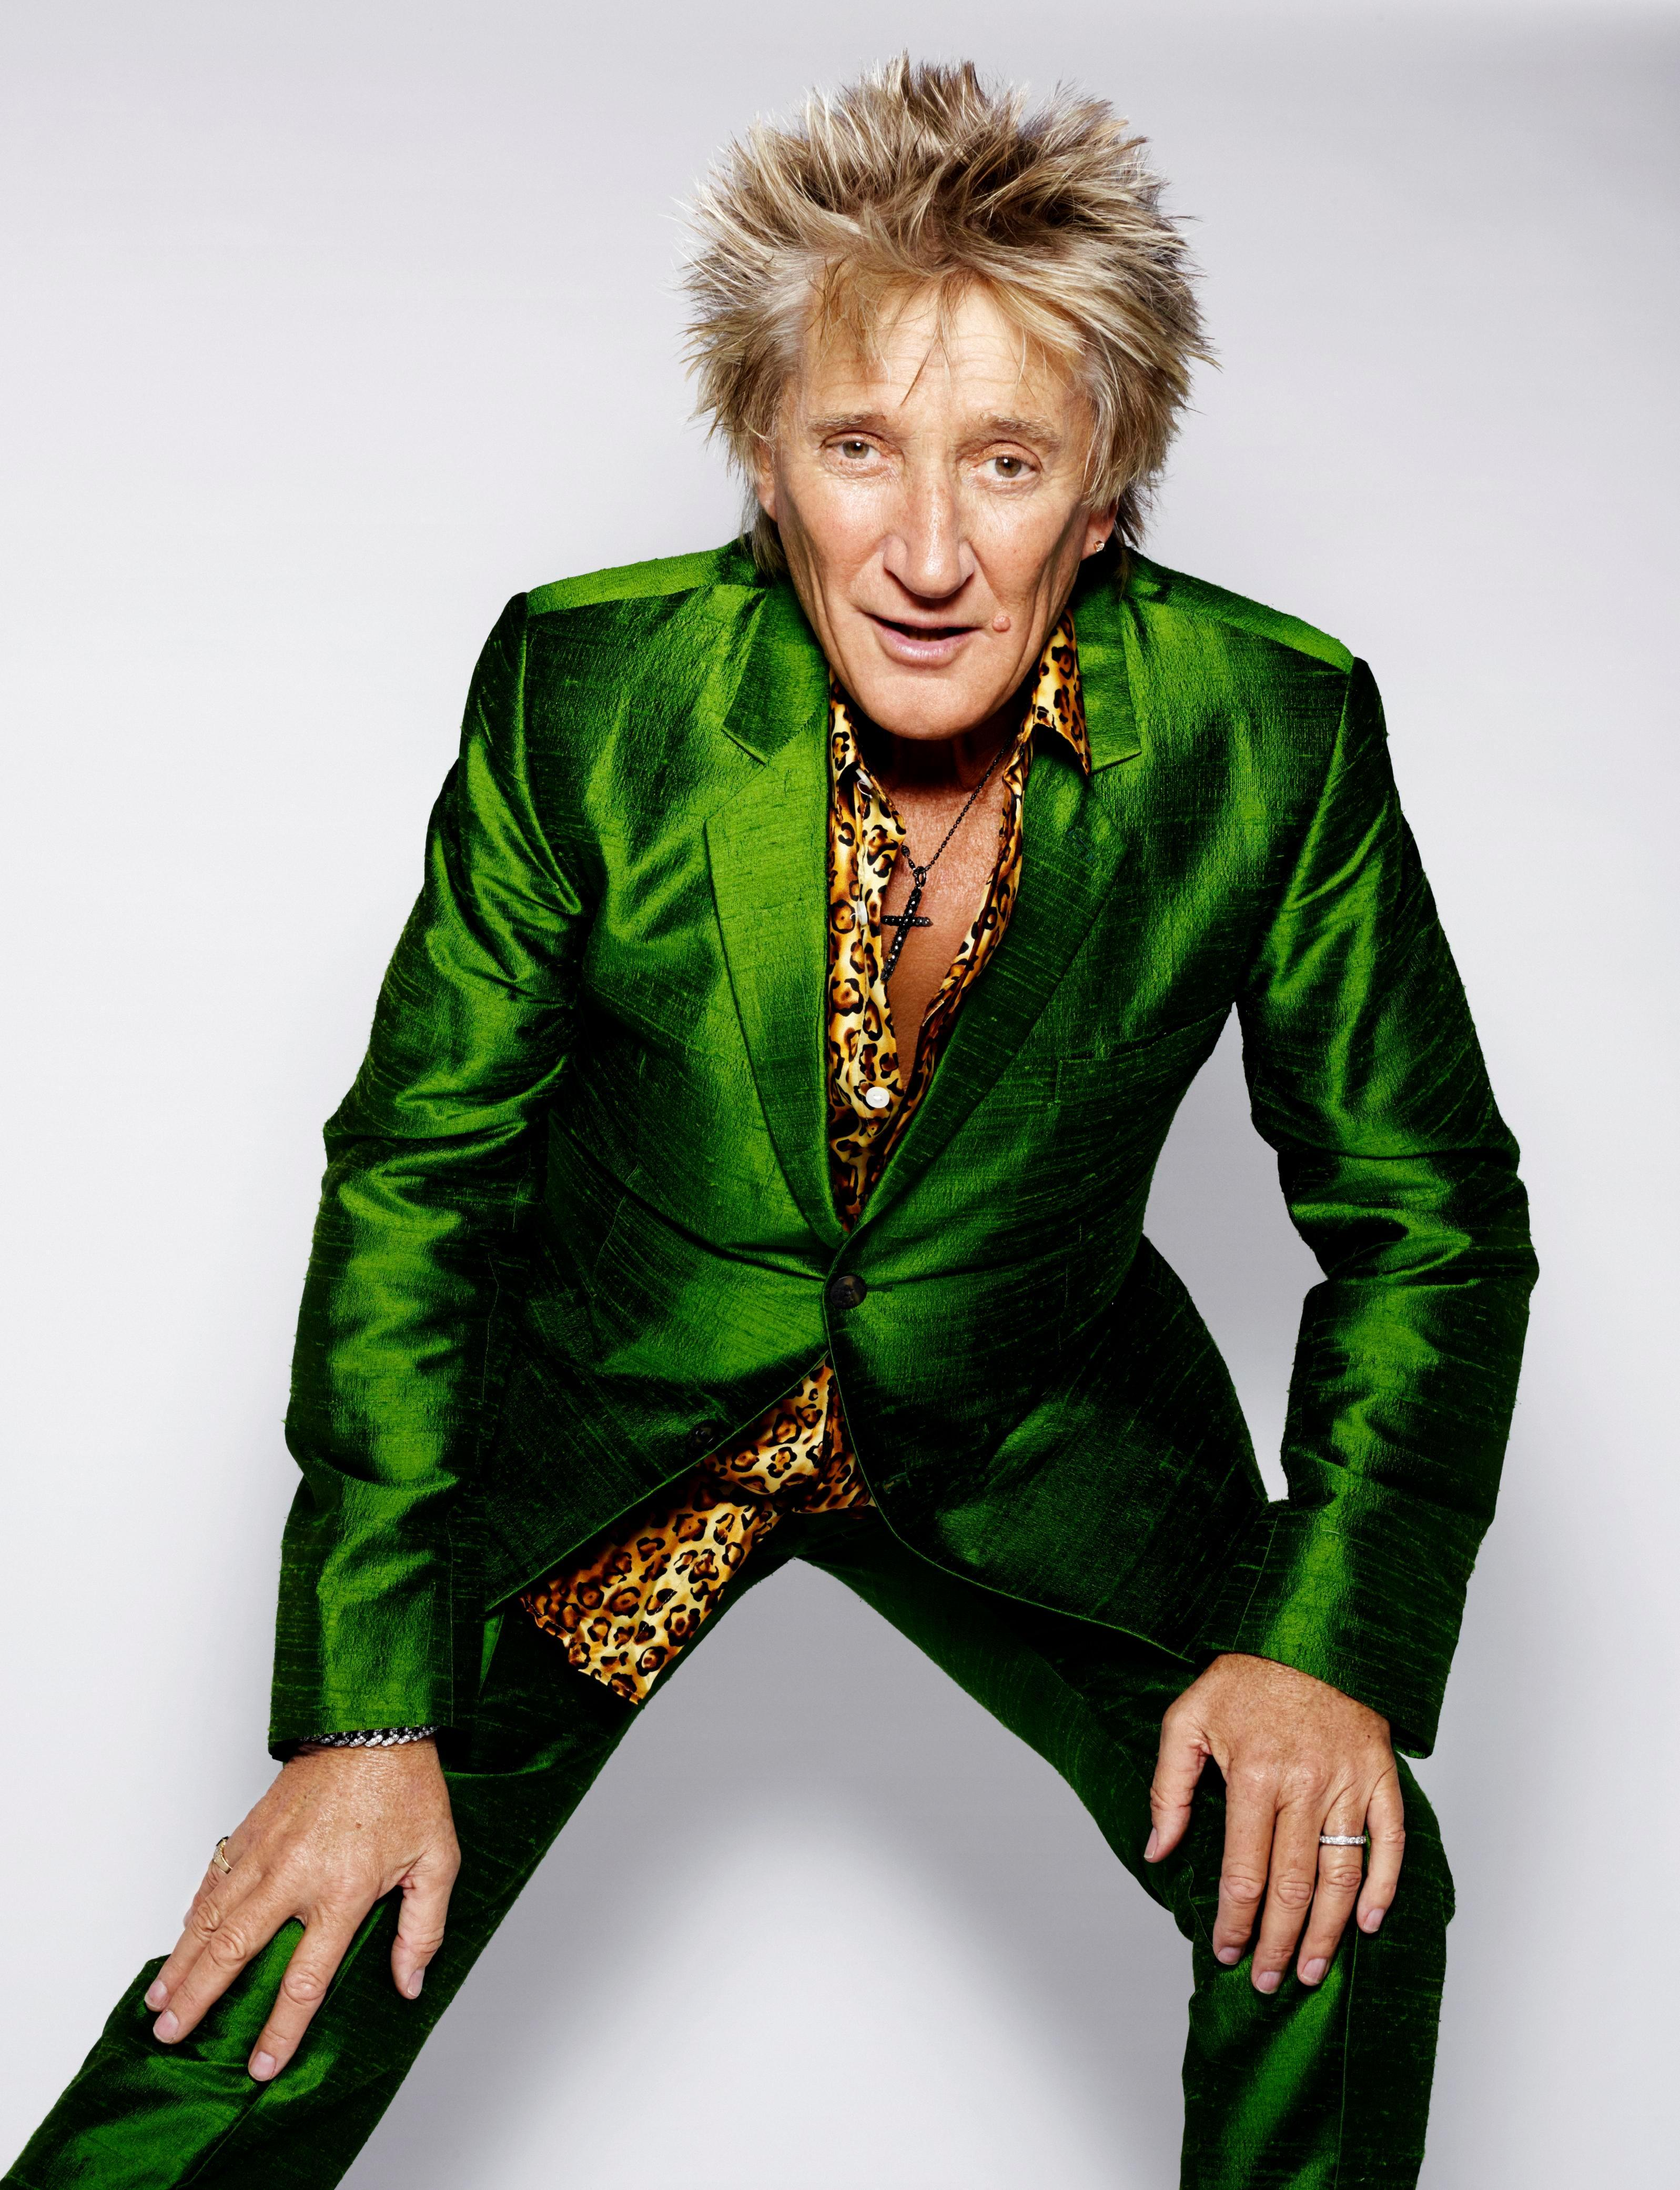 Rod Stewart makes emotional return to the music scene with new single Didn't I